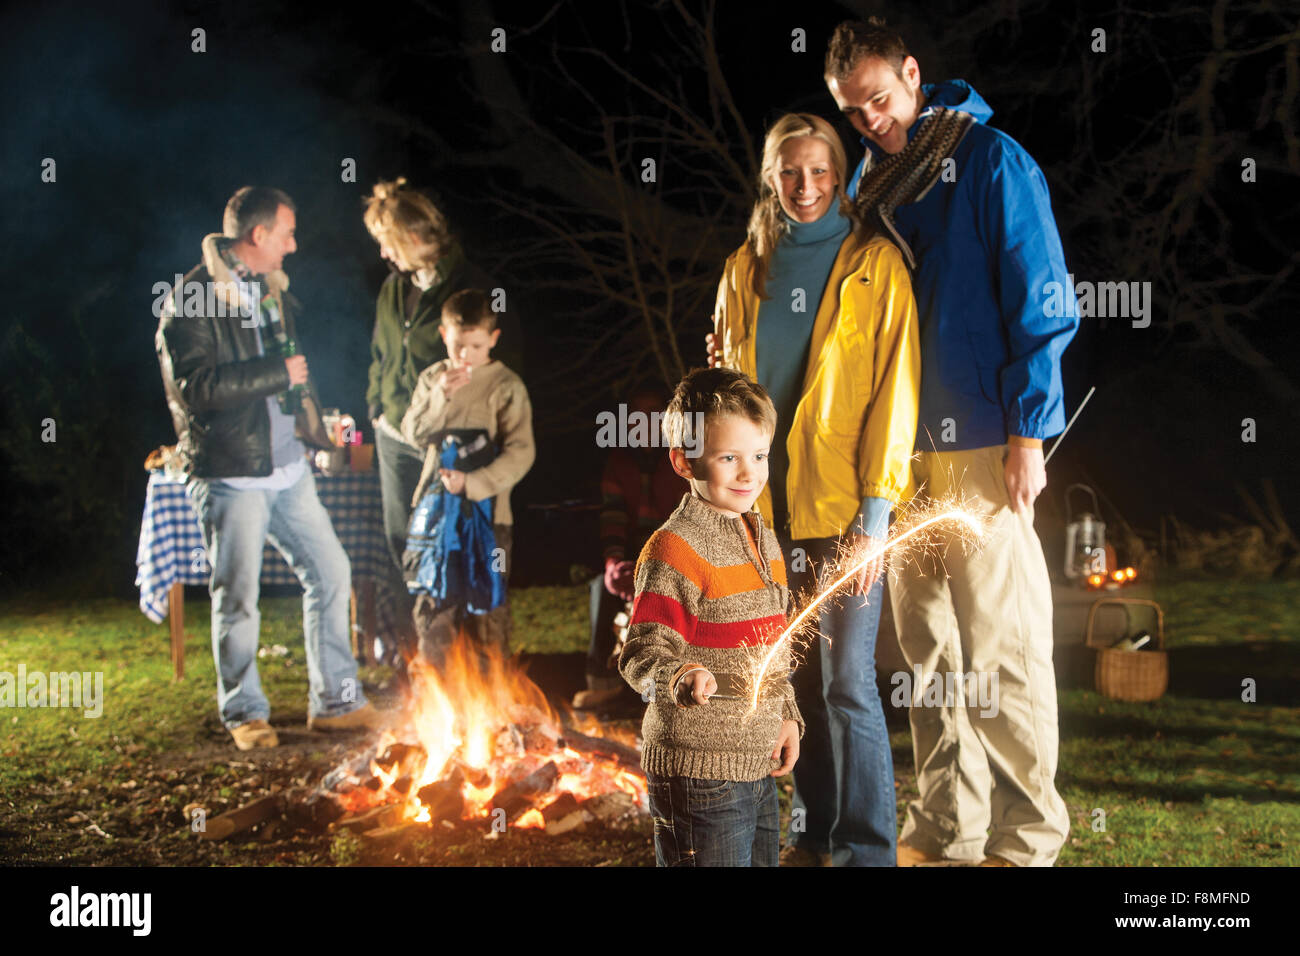 Family in garden enjoying a bonfire and playing with sparklers Stock Photo